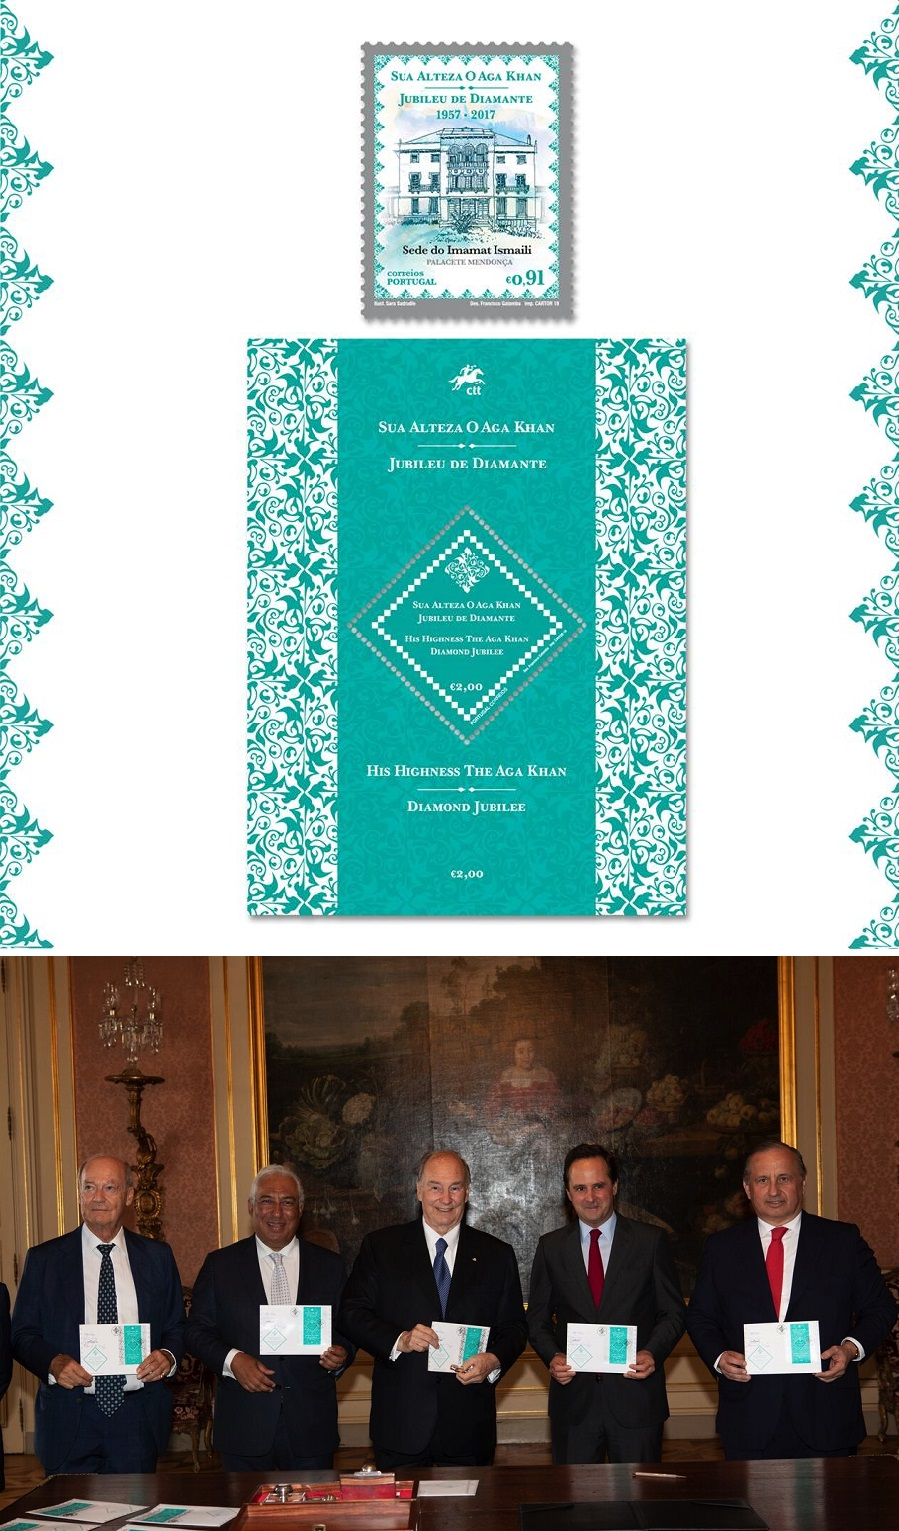 'A diamond is forever': In honour of His Highness the Aga Khan, Portugal Postal Service releases a unique souvenir sheet embedded with a 1.24mm genuine diamond – a family keepsake for generations to come